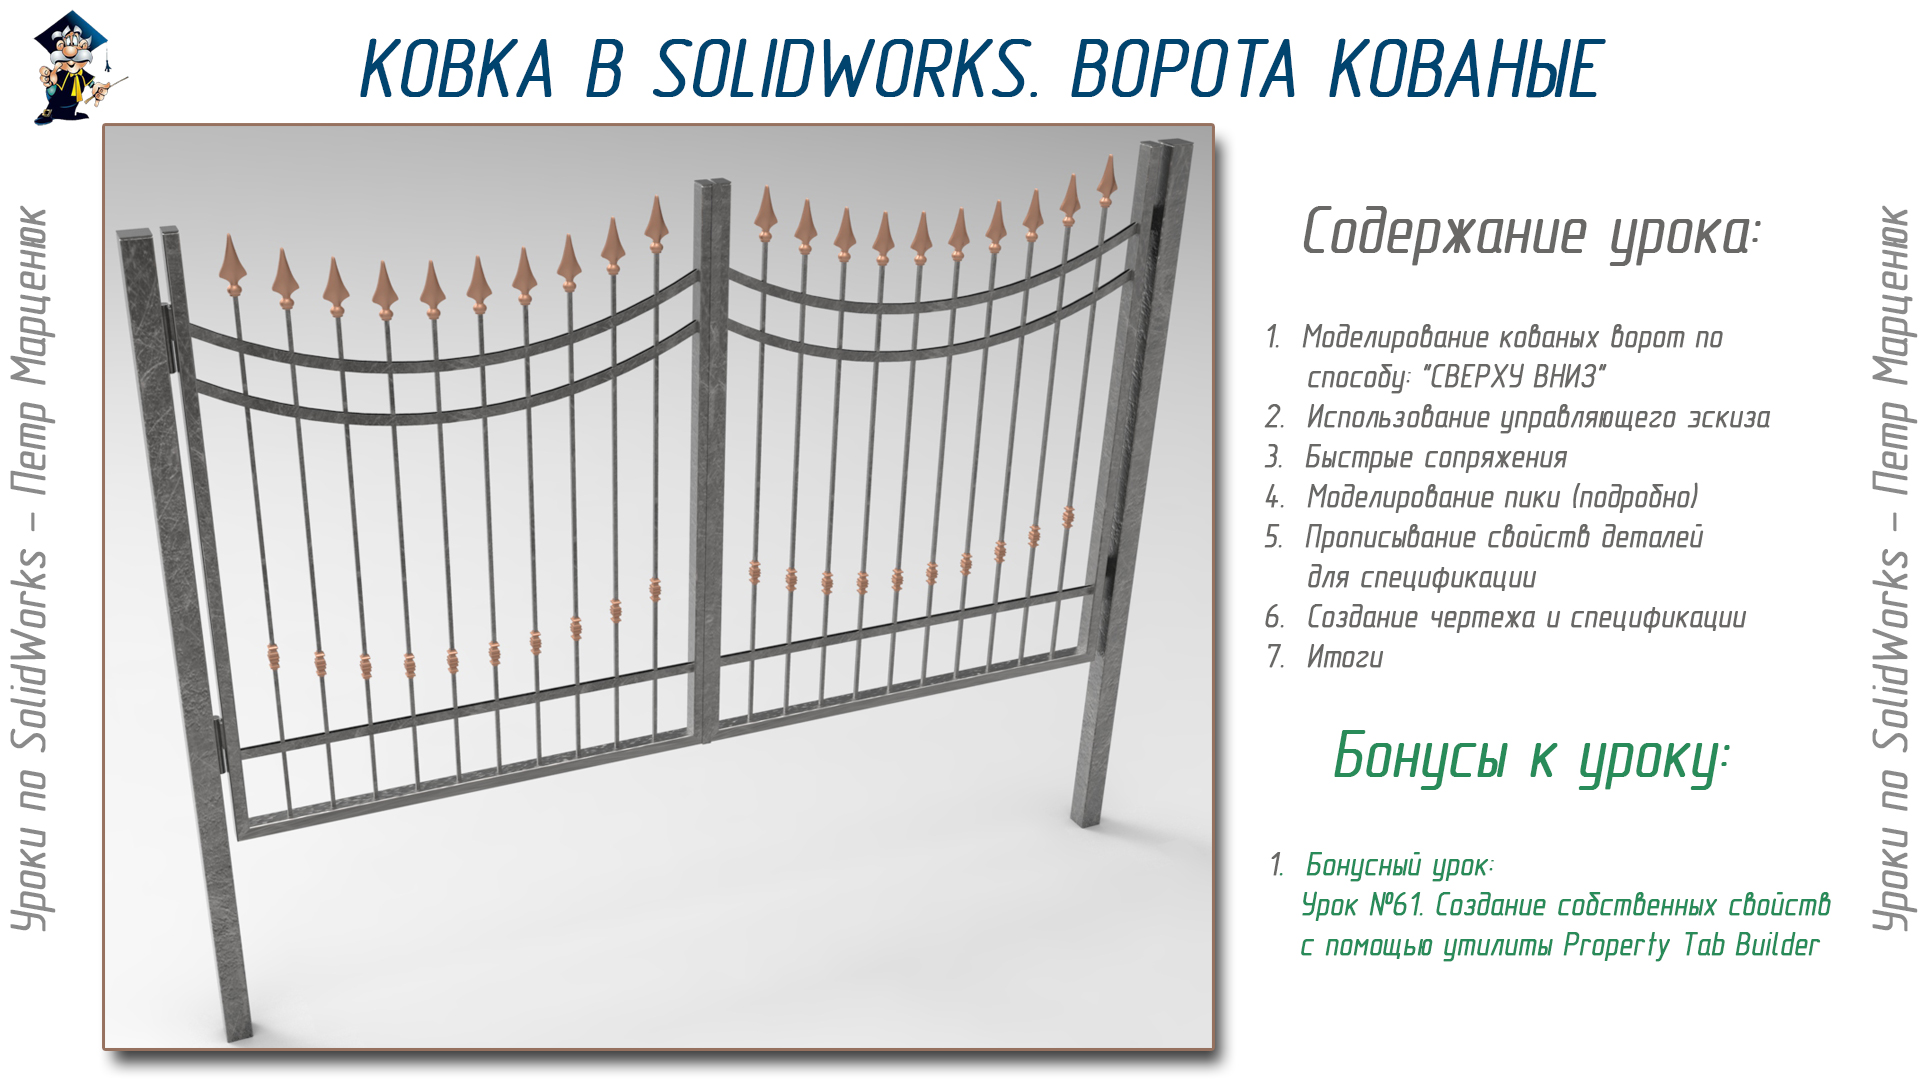 Forging in SolidWorks. Hammered gates from A to Z